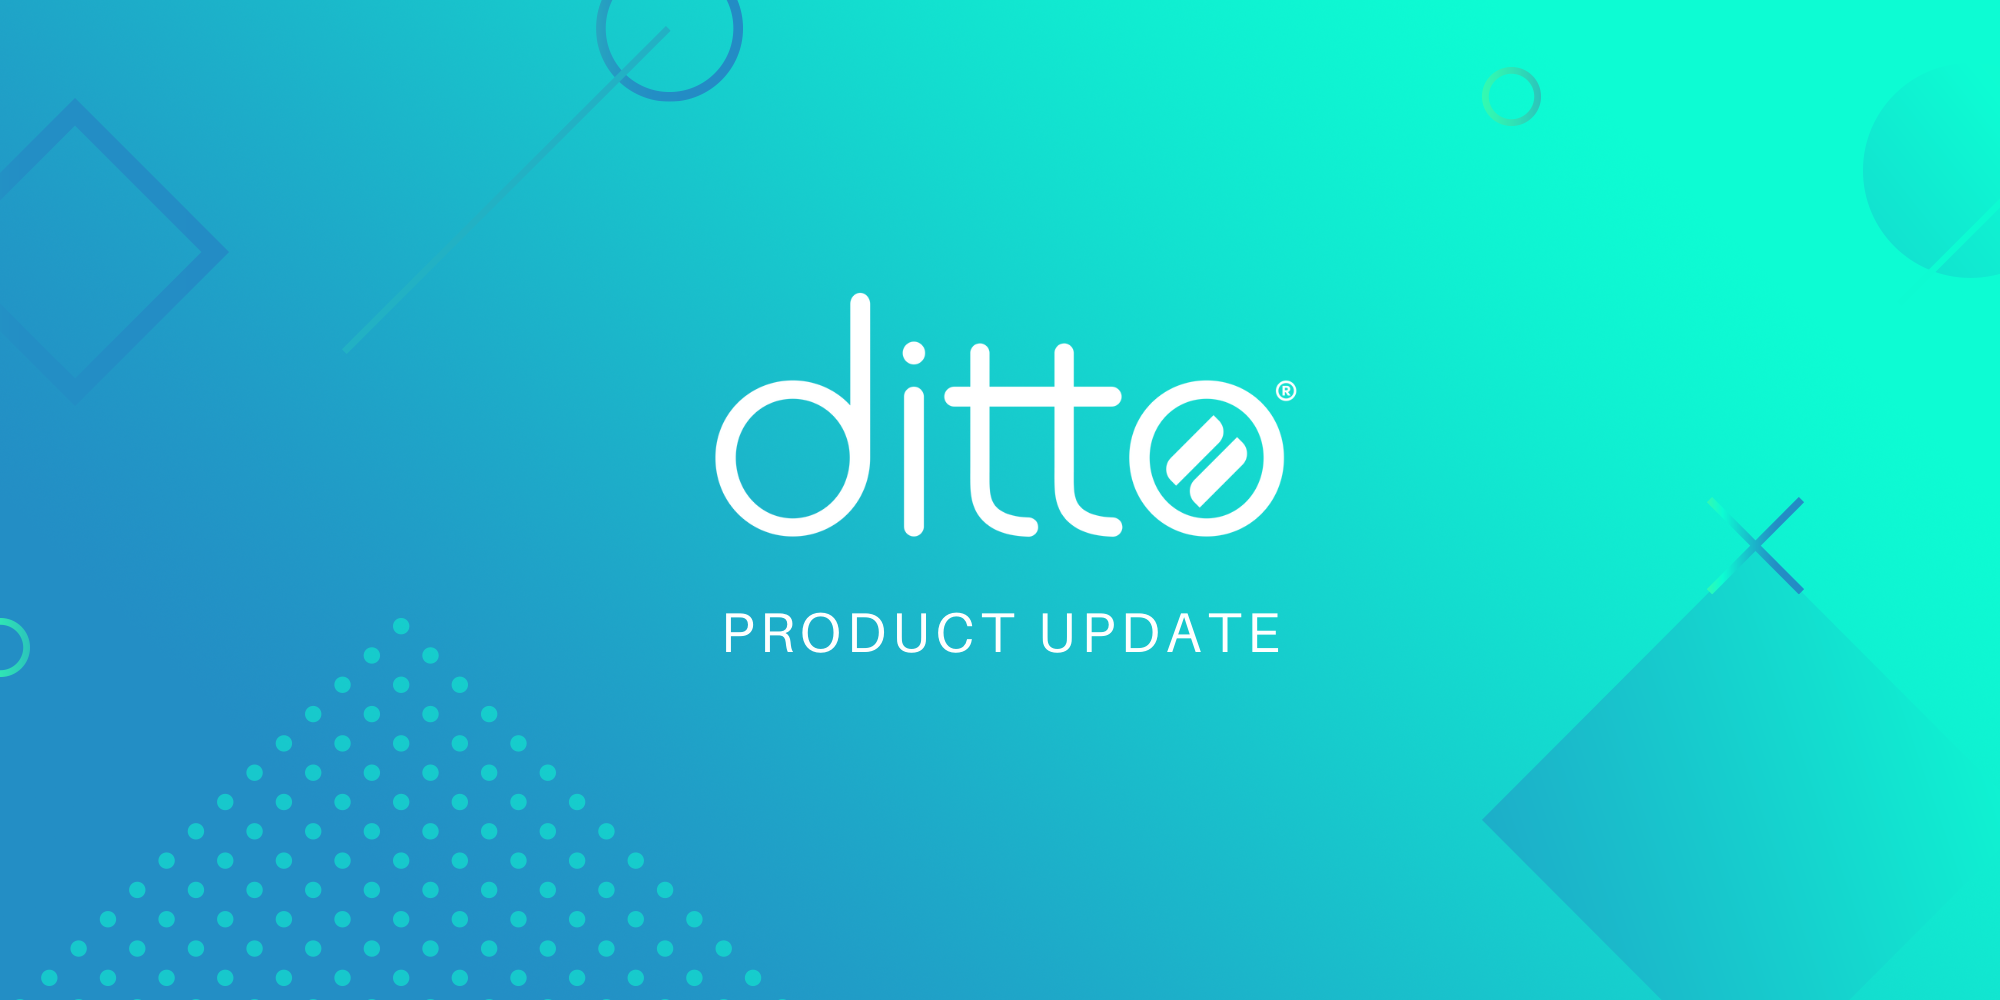 Ditto Update Introduces Adjustable Screen Dimming, Better Access to Support and More